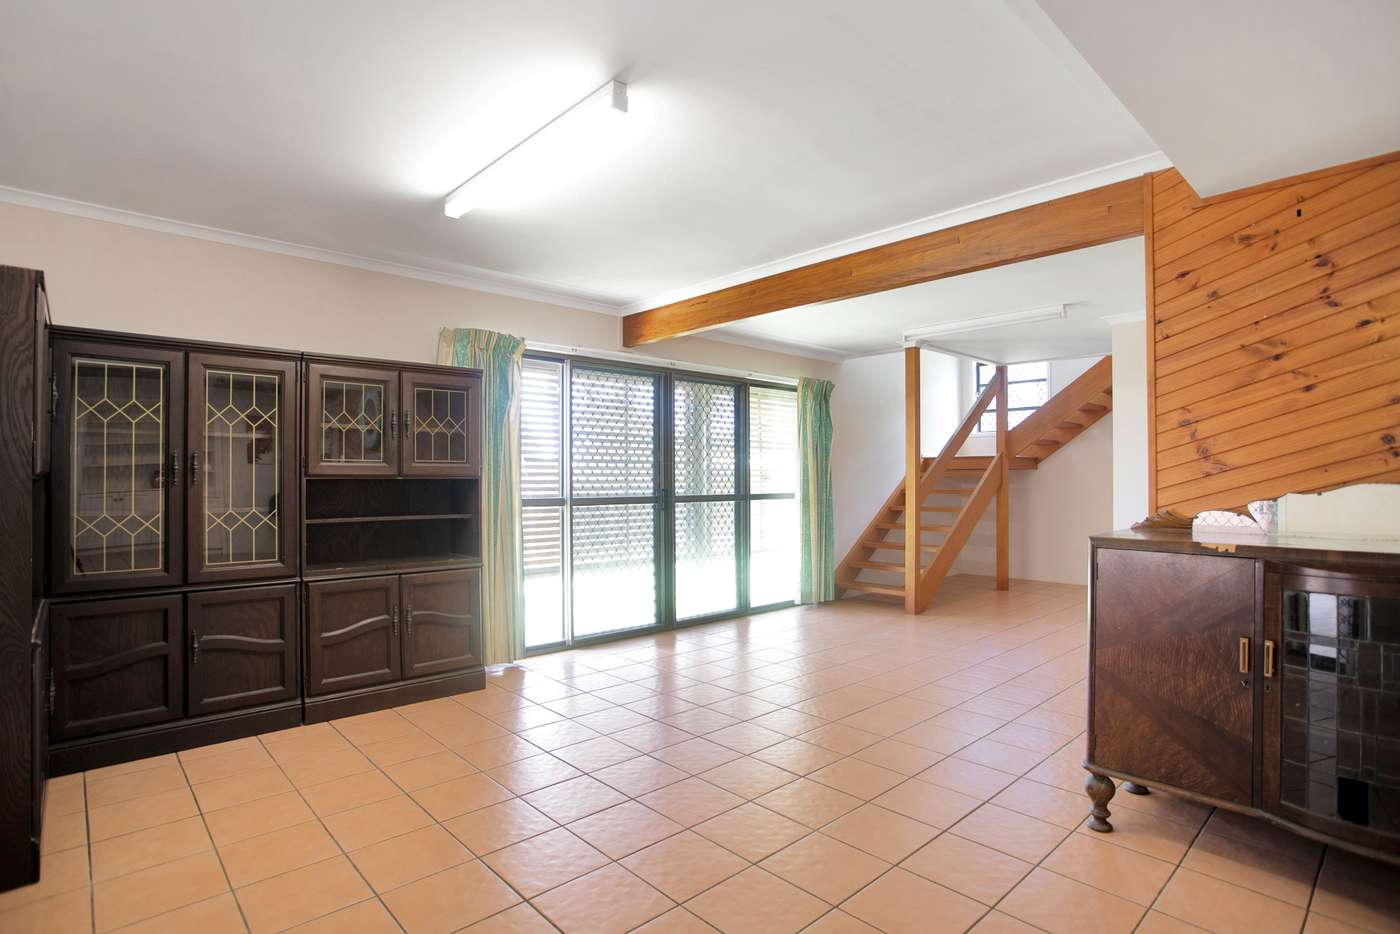 Sixth view of Homely house listing, 3 Wigham Court, Beaconsfield QLD 4740